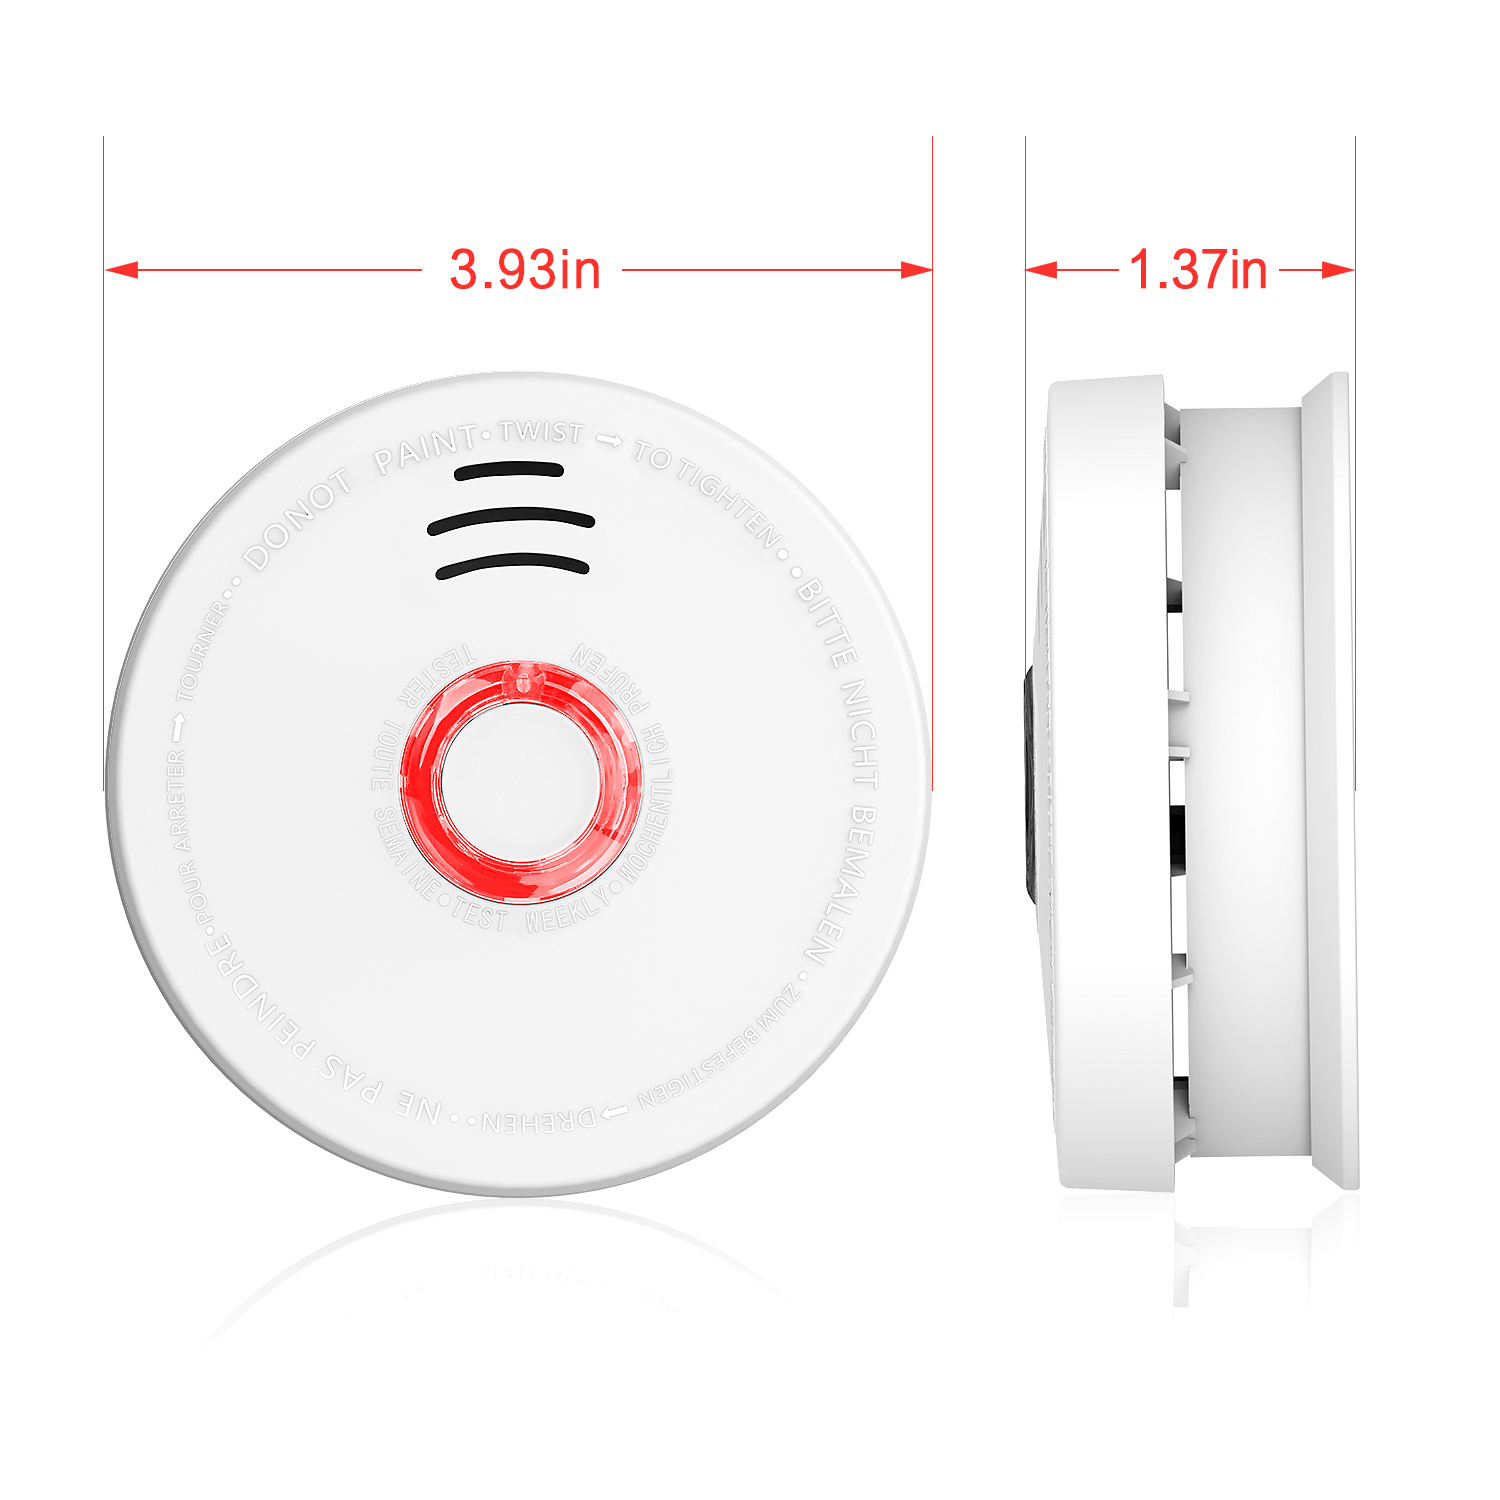 Smoke Detector, Battery-Operated(Not Hardwired) Smoke and